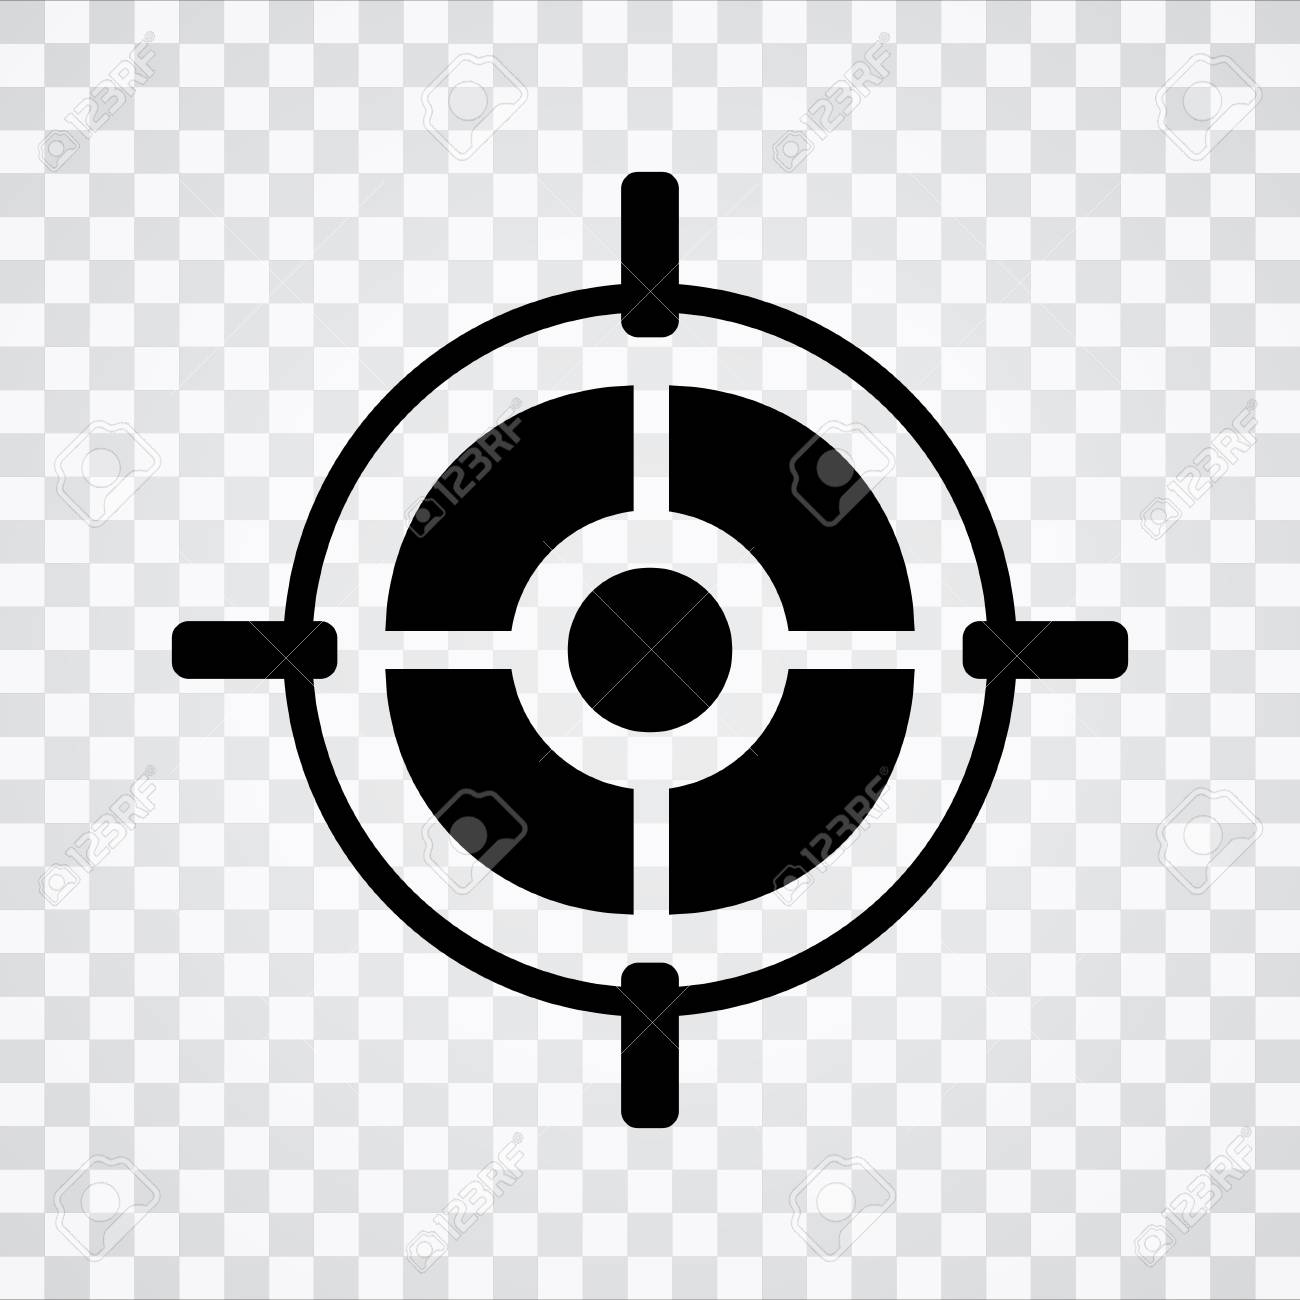 target aim icon royalty free cliparts vectors and stock illustration image 81206734 target aim icon